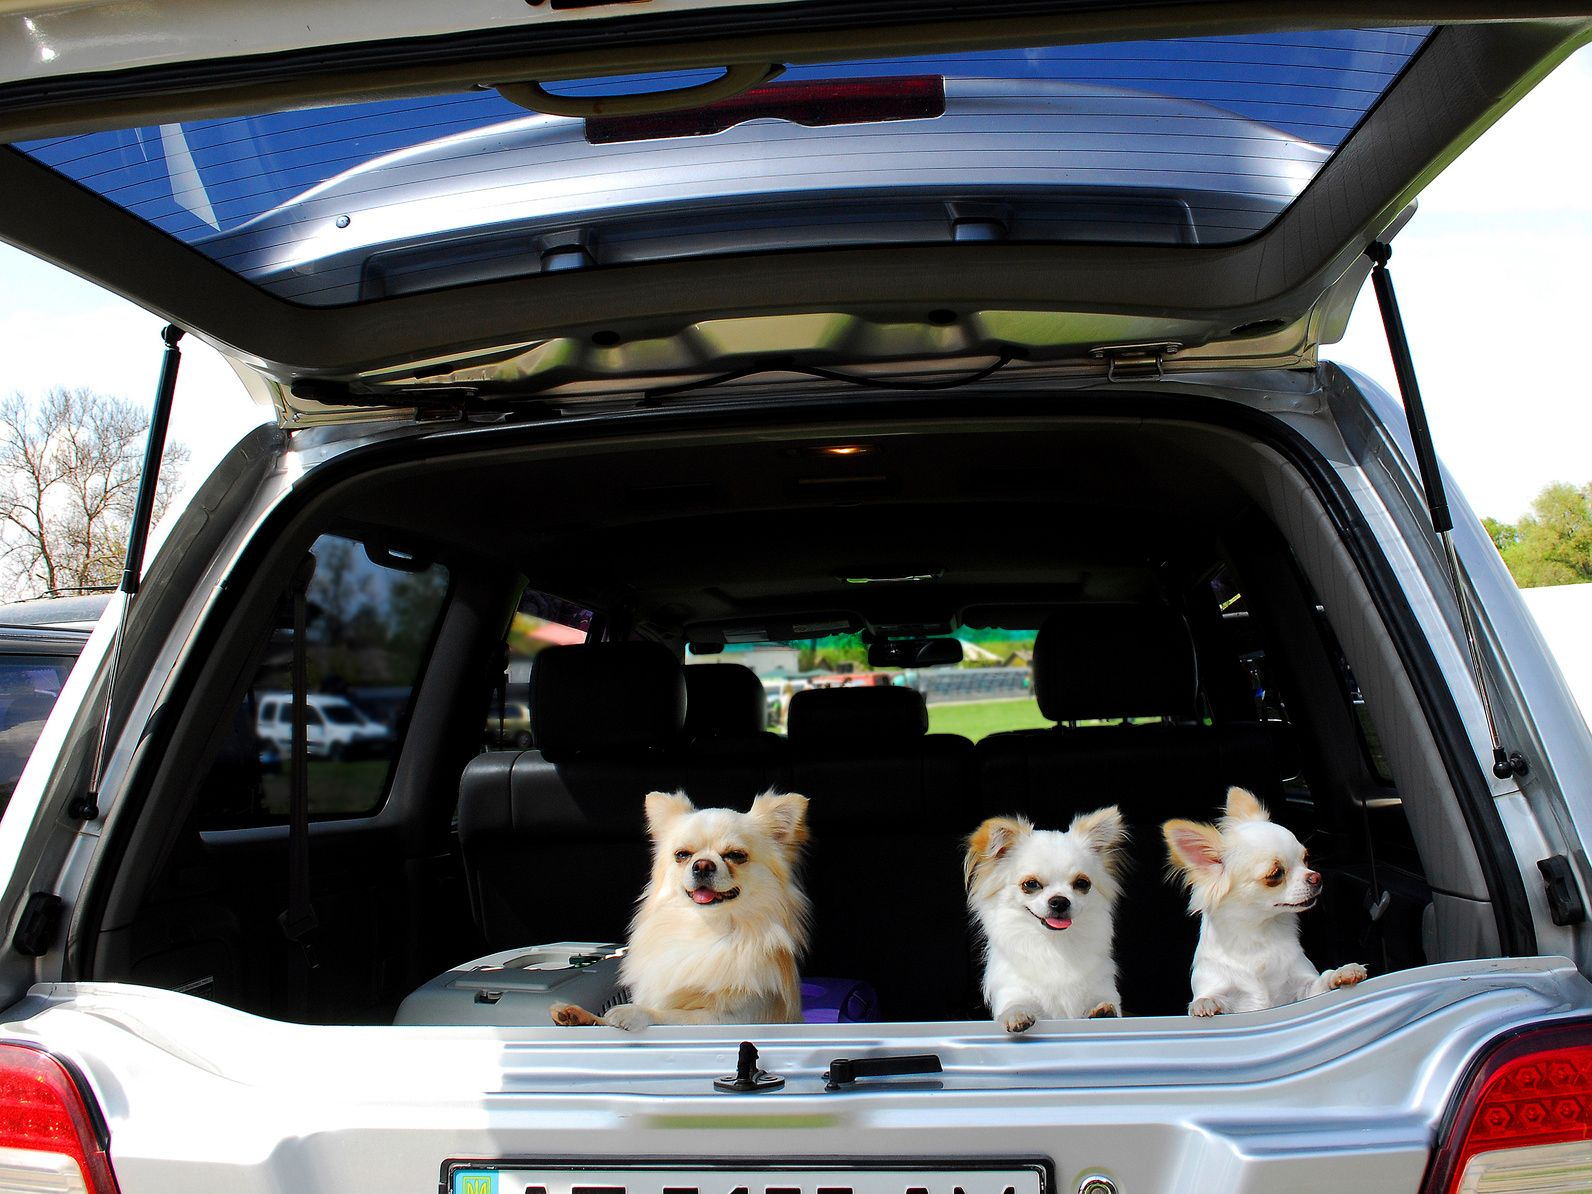 Three small doggies sit in the luggage rack of car.A luggage rack is open.Dogs peek out on a street.